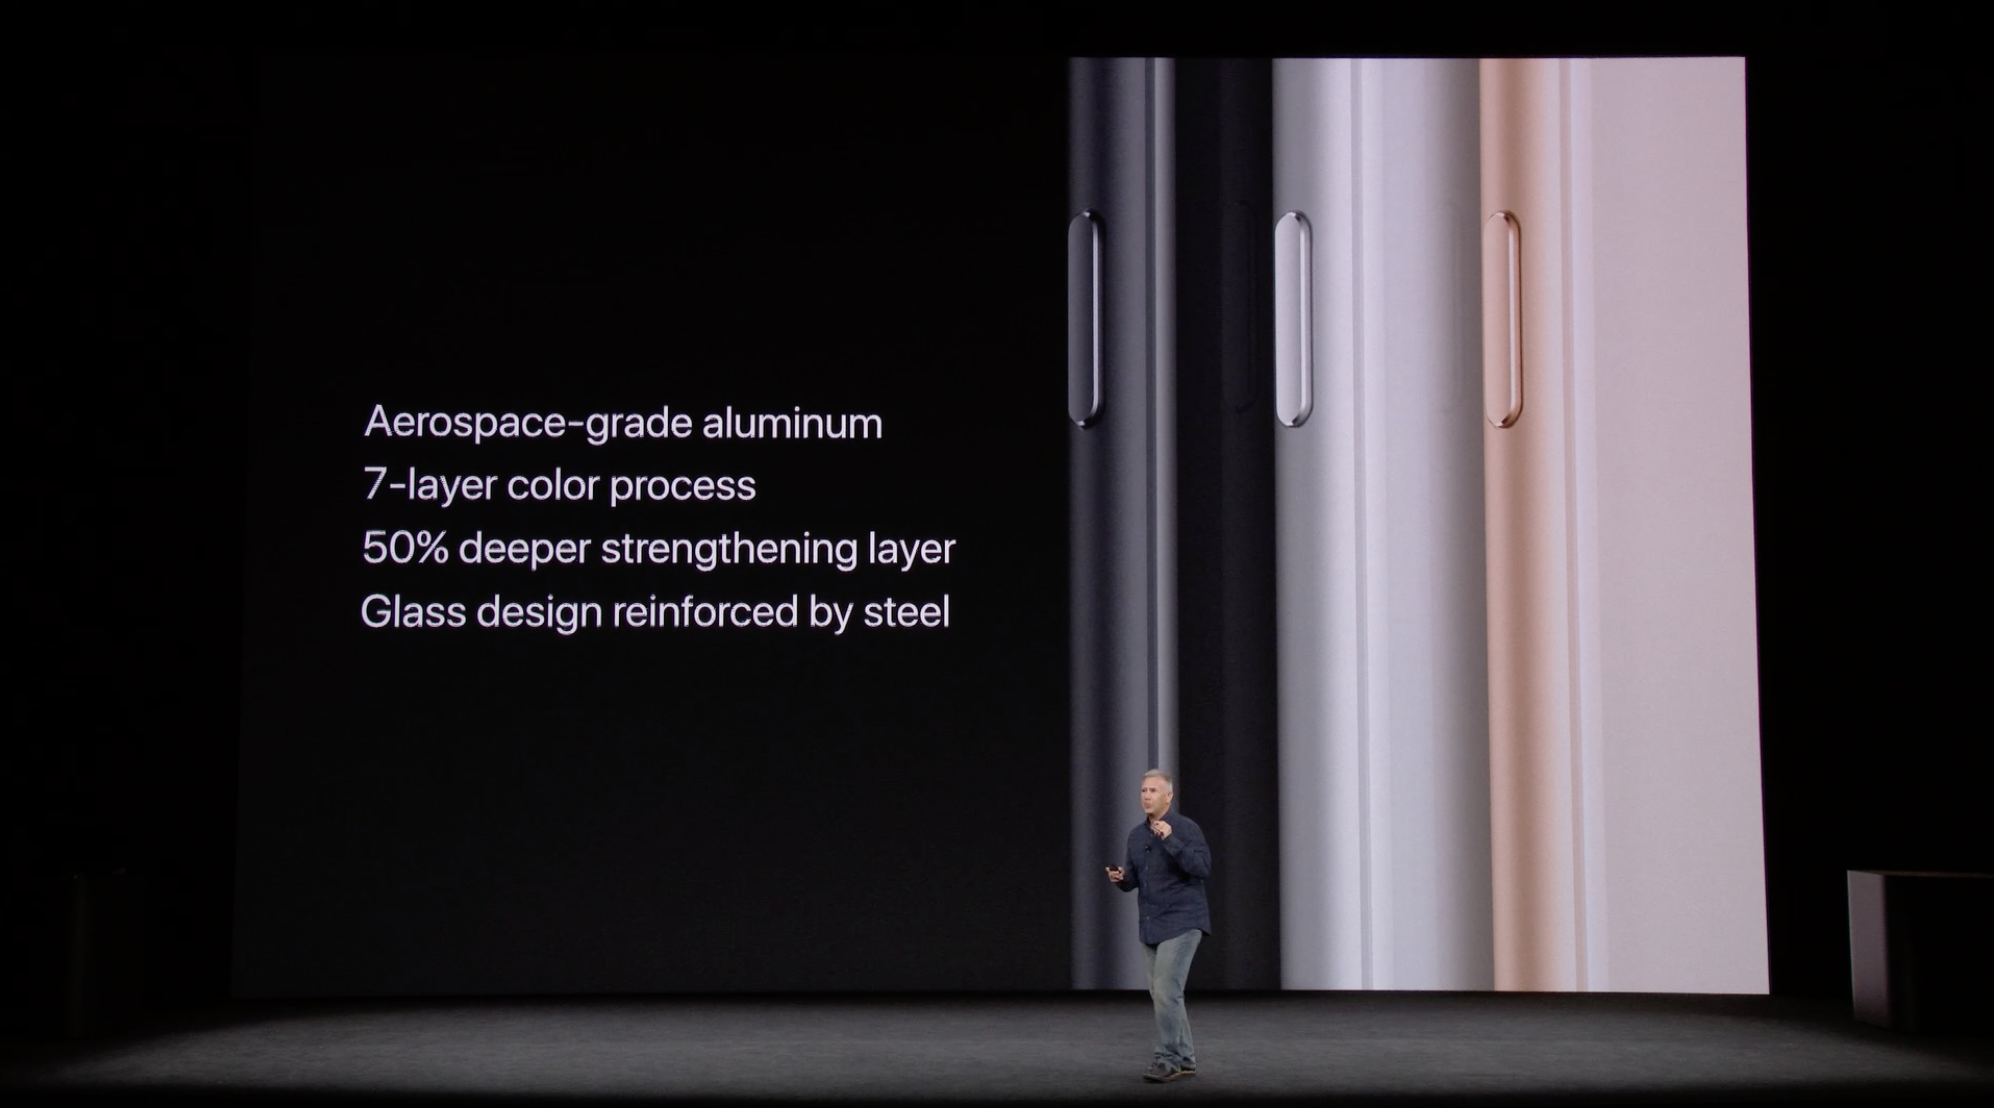 Materials and features used to make the new iPhone 8